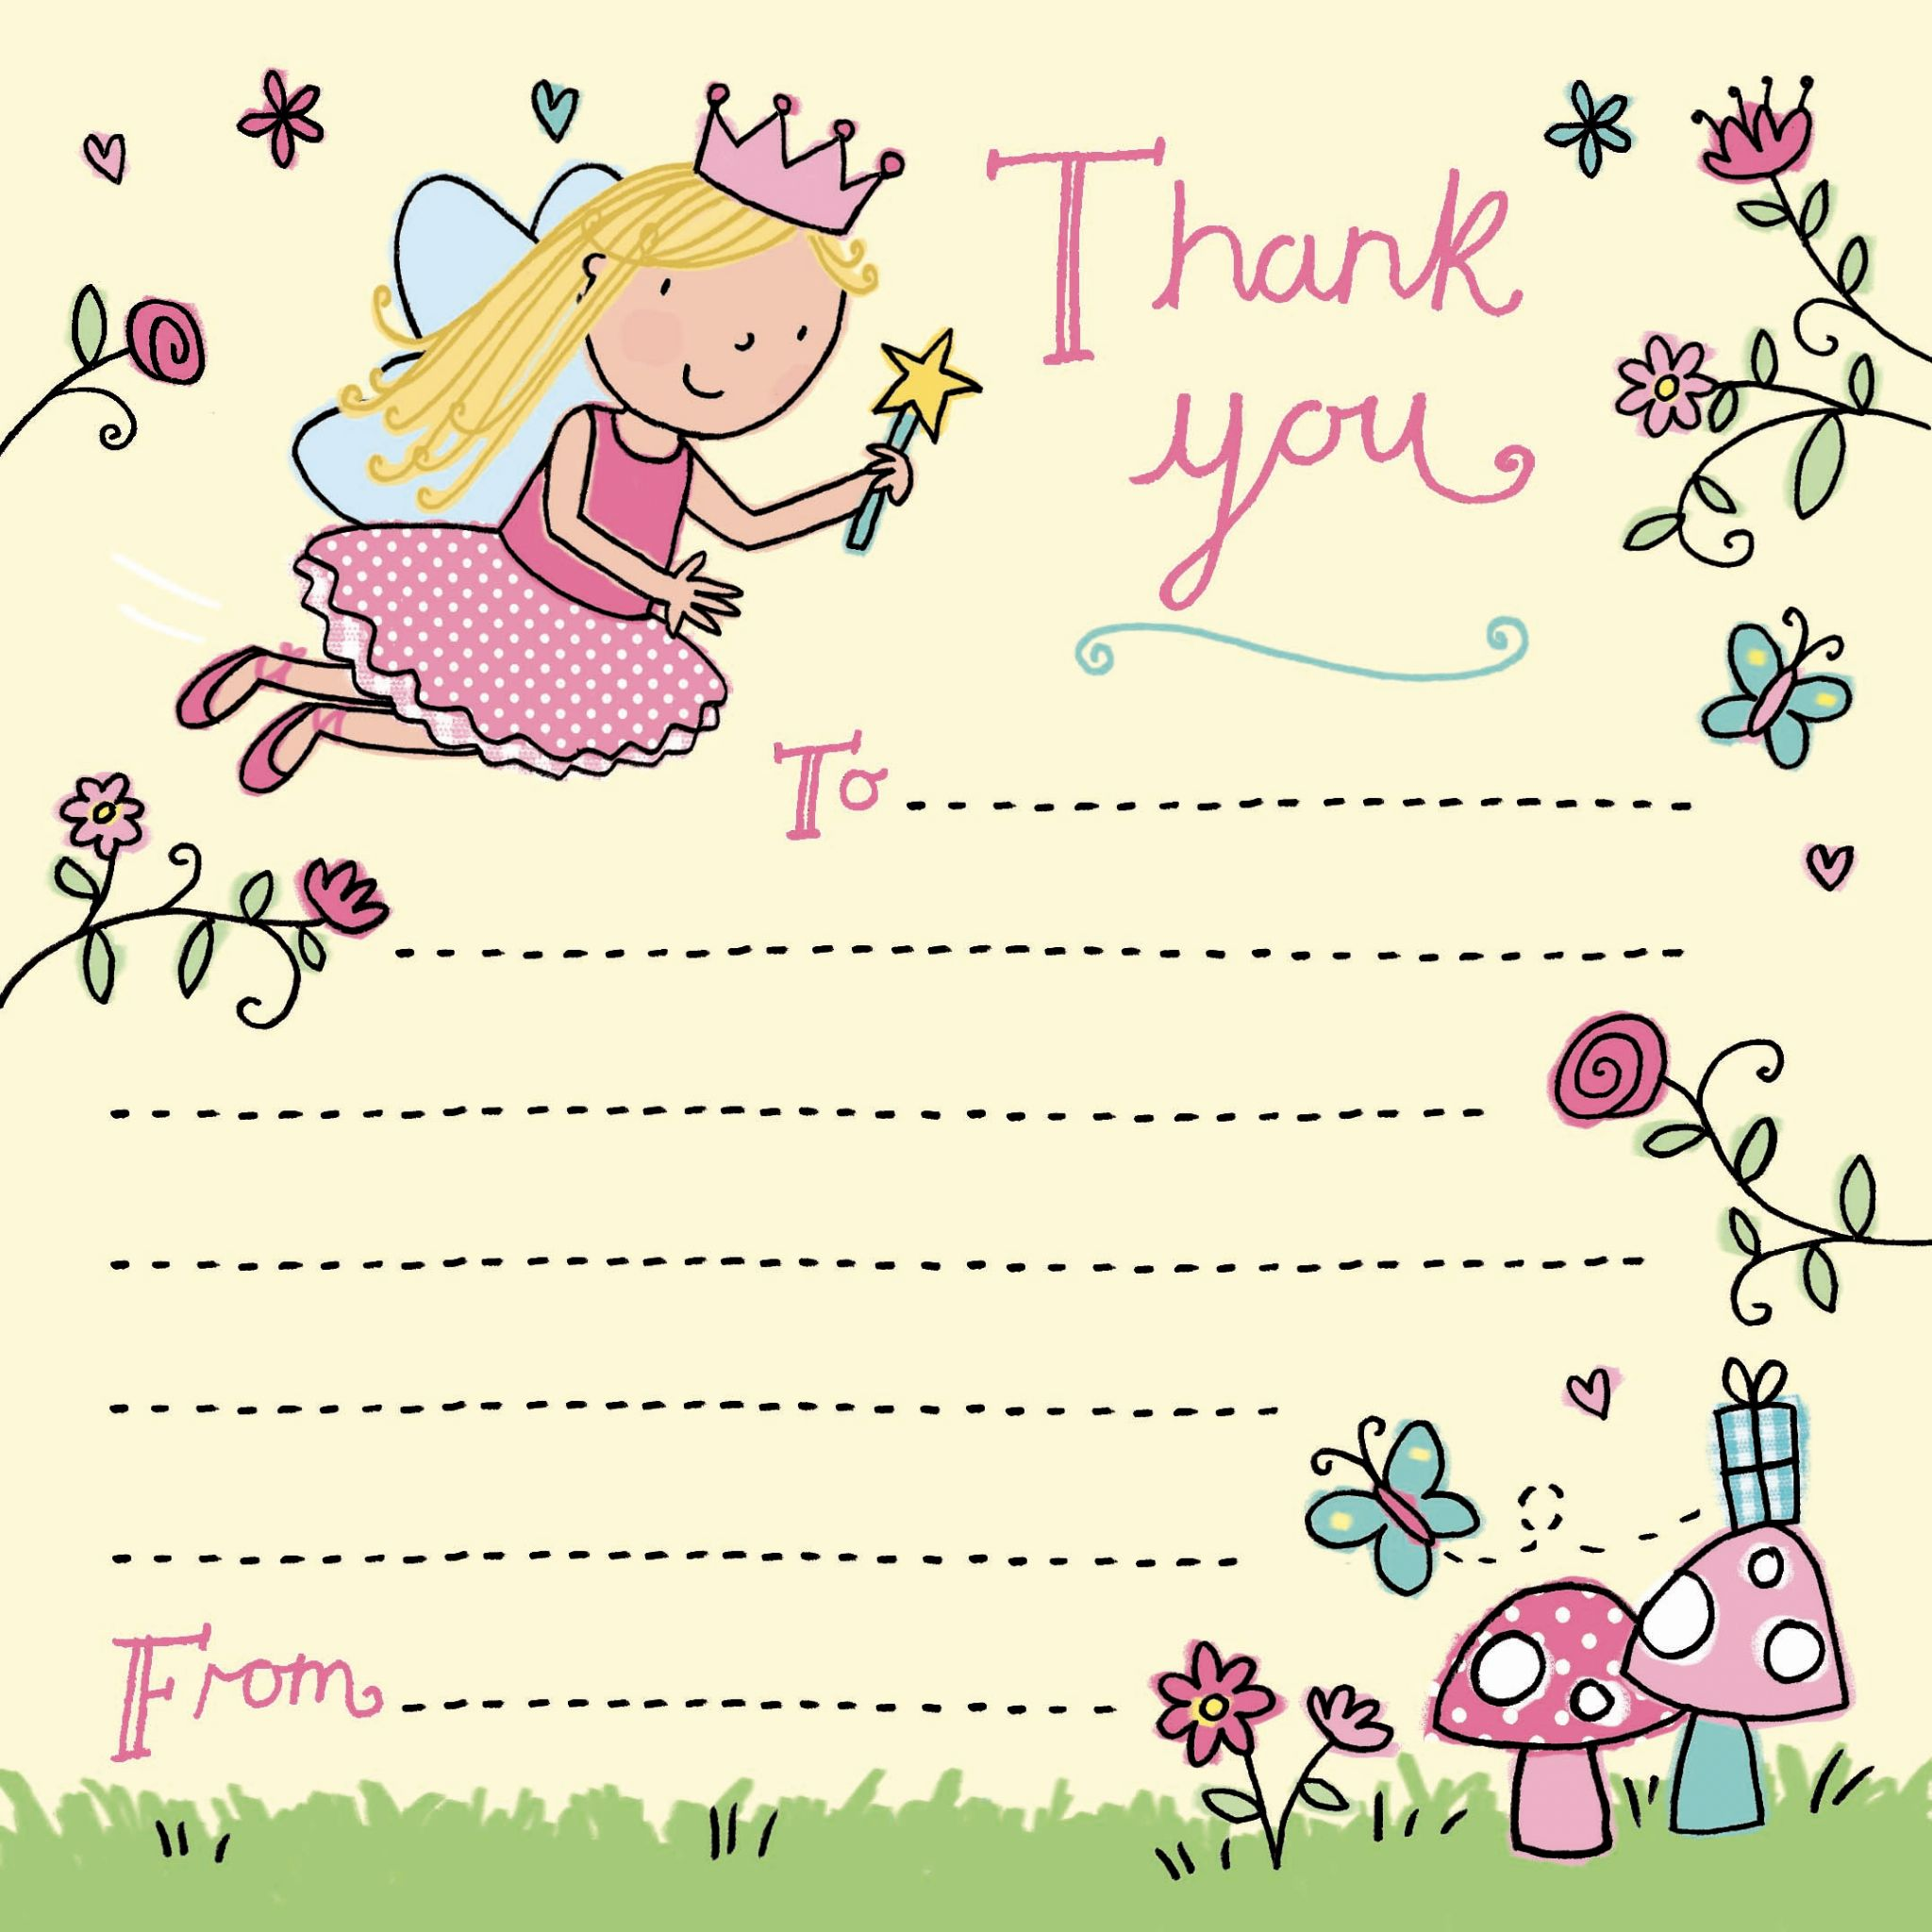 Thank you notes for kids thank you cards for children kids thank thank you notes for kids thank you cards for children kids thank you notes kids birthday thank you notes kids thank you note kristyandbryce Images